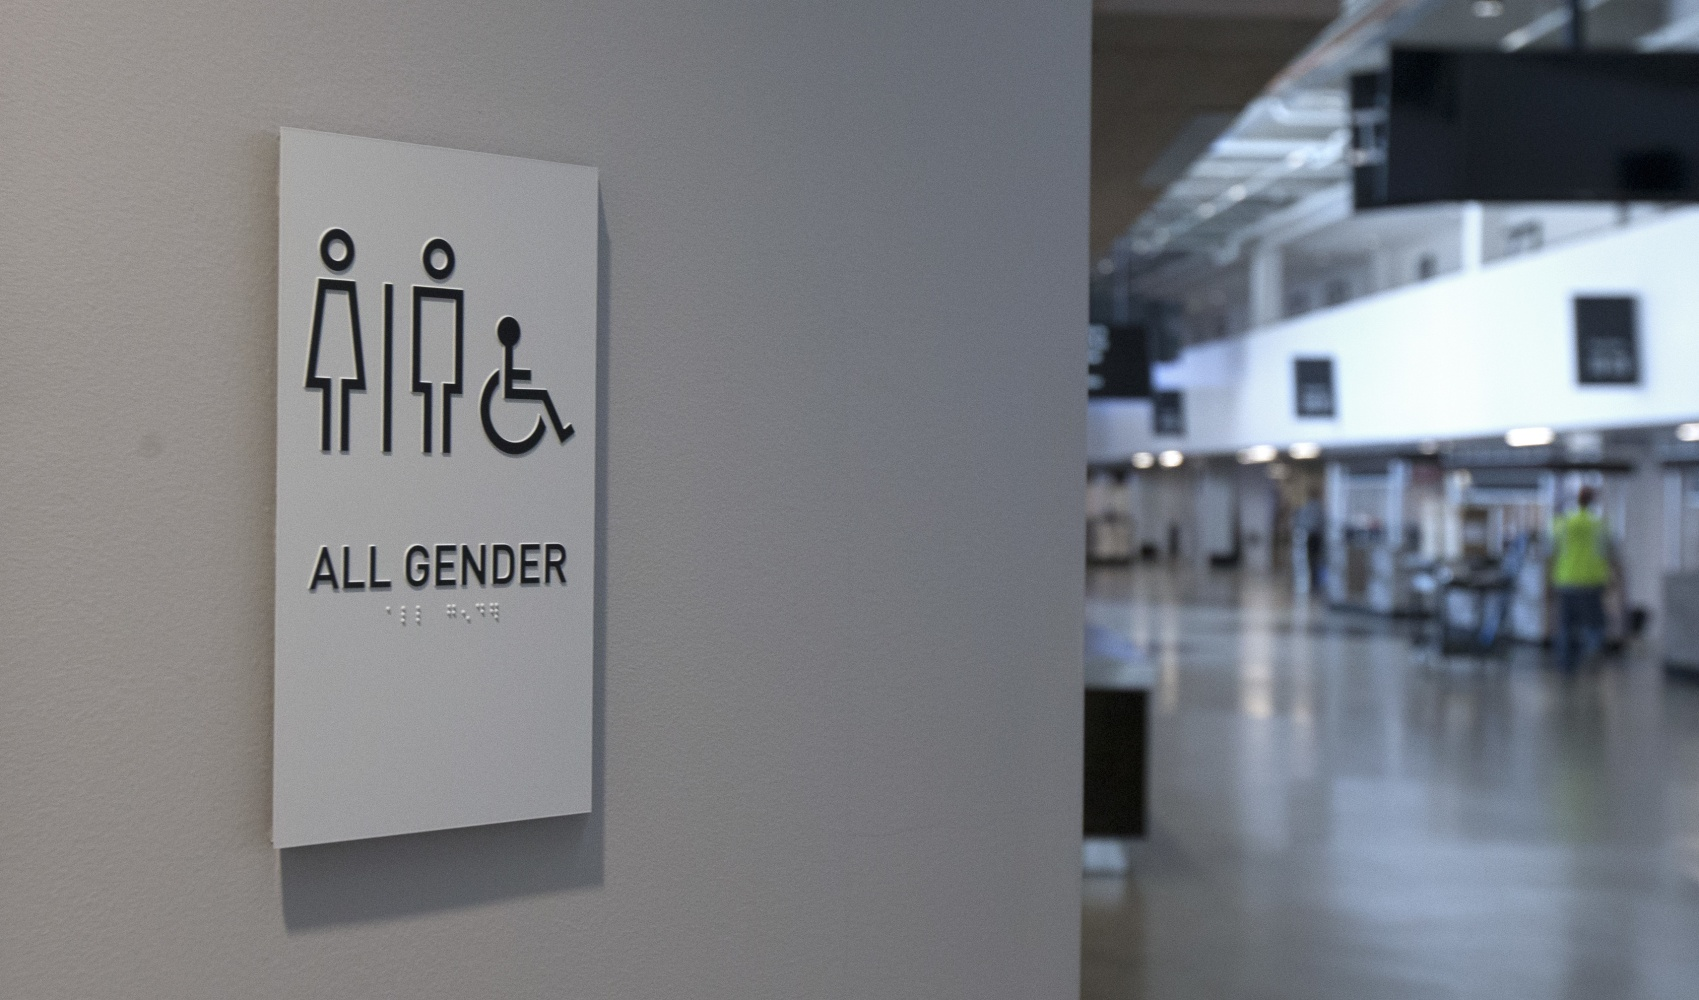 Yelp To Help Customers Find Gender-Neutral Bathrooms